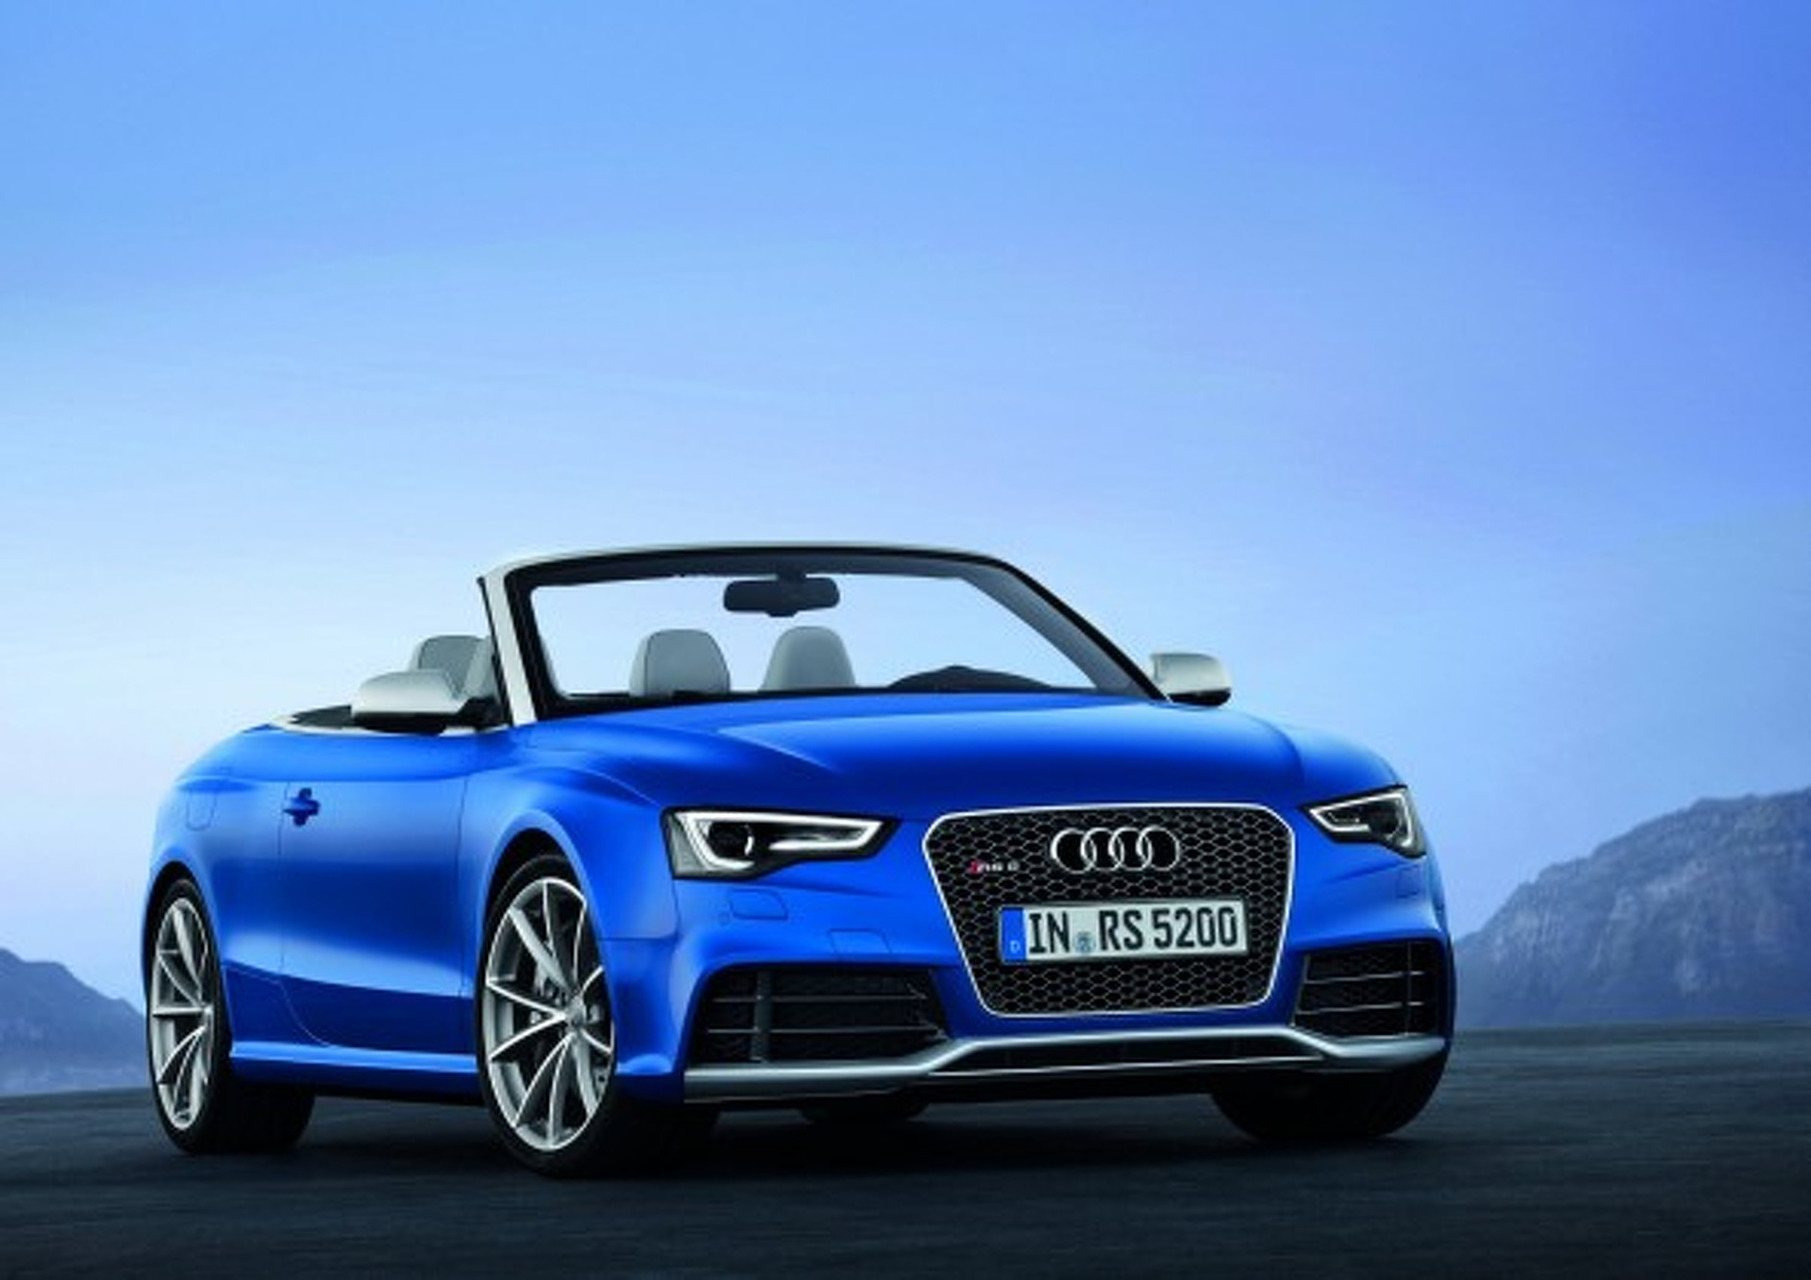 Top 6 Car News Stories For The Week - September 9th, 2012